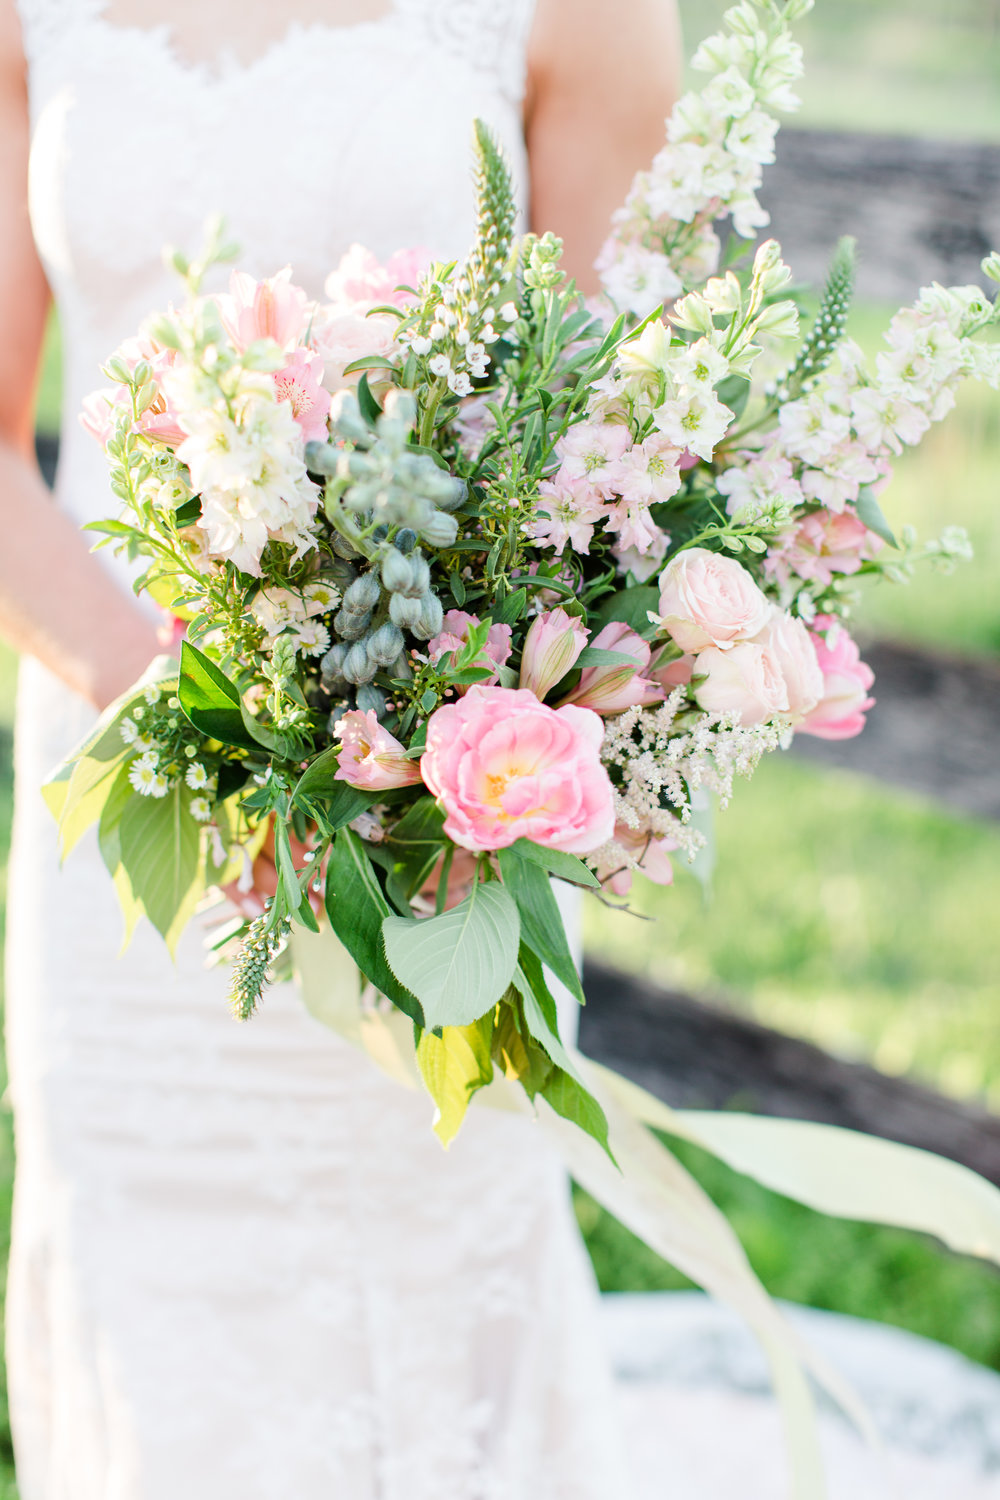 tranquility-farm-purcellville-va-blush-greenery-boho-elegance-wedding-inspiration-bethanne-arthur-photography-photos-182.jpg